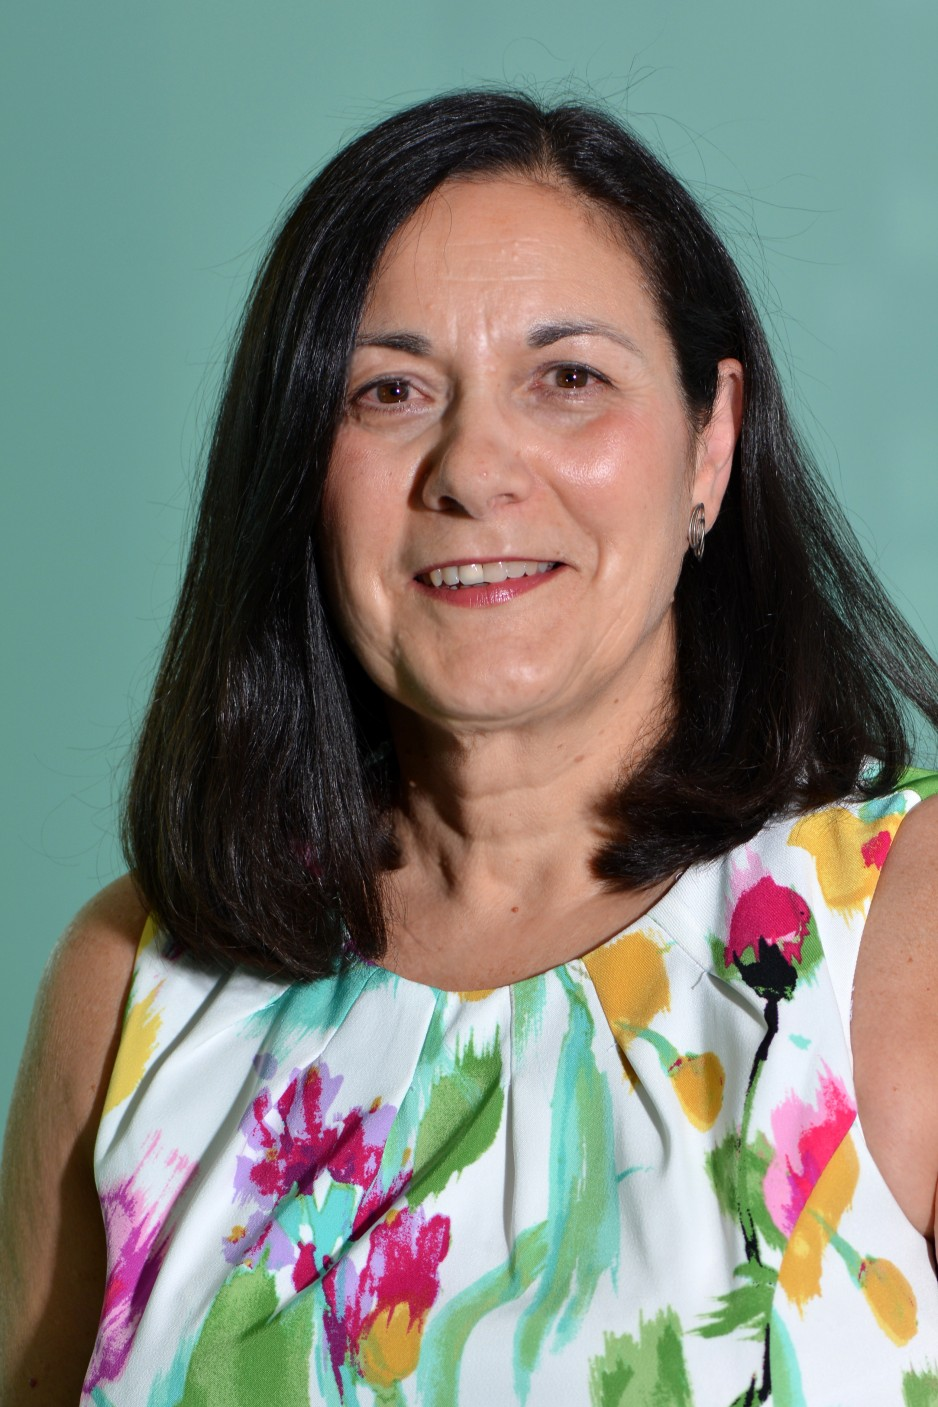 Image of Maria Knowles